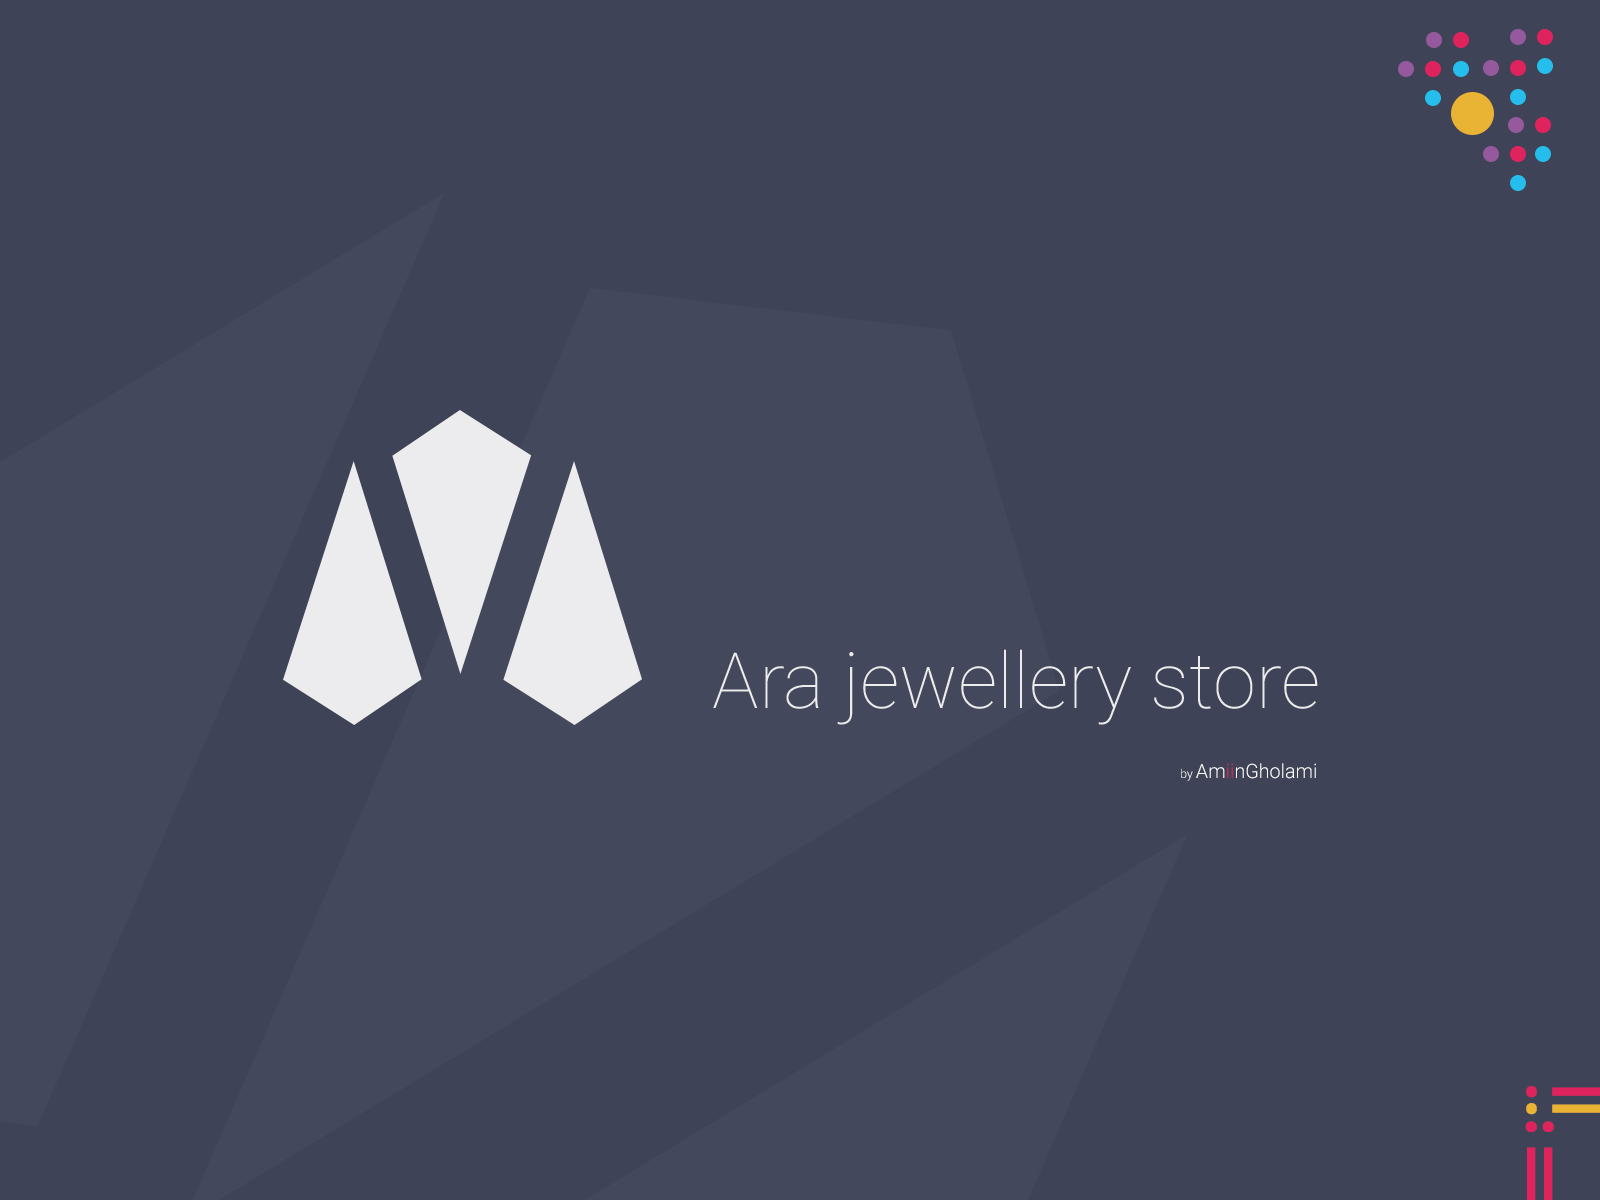 new products e521d 14cb0 Ara jewellery store by Amin Gholami on Dribbble